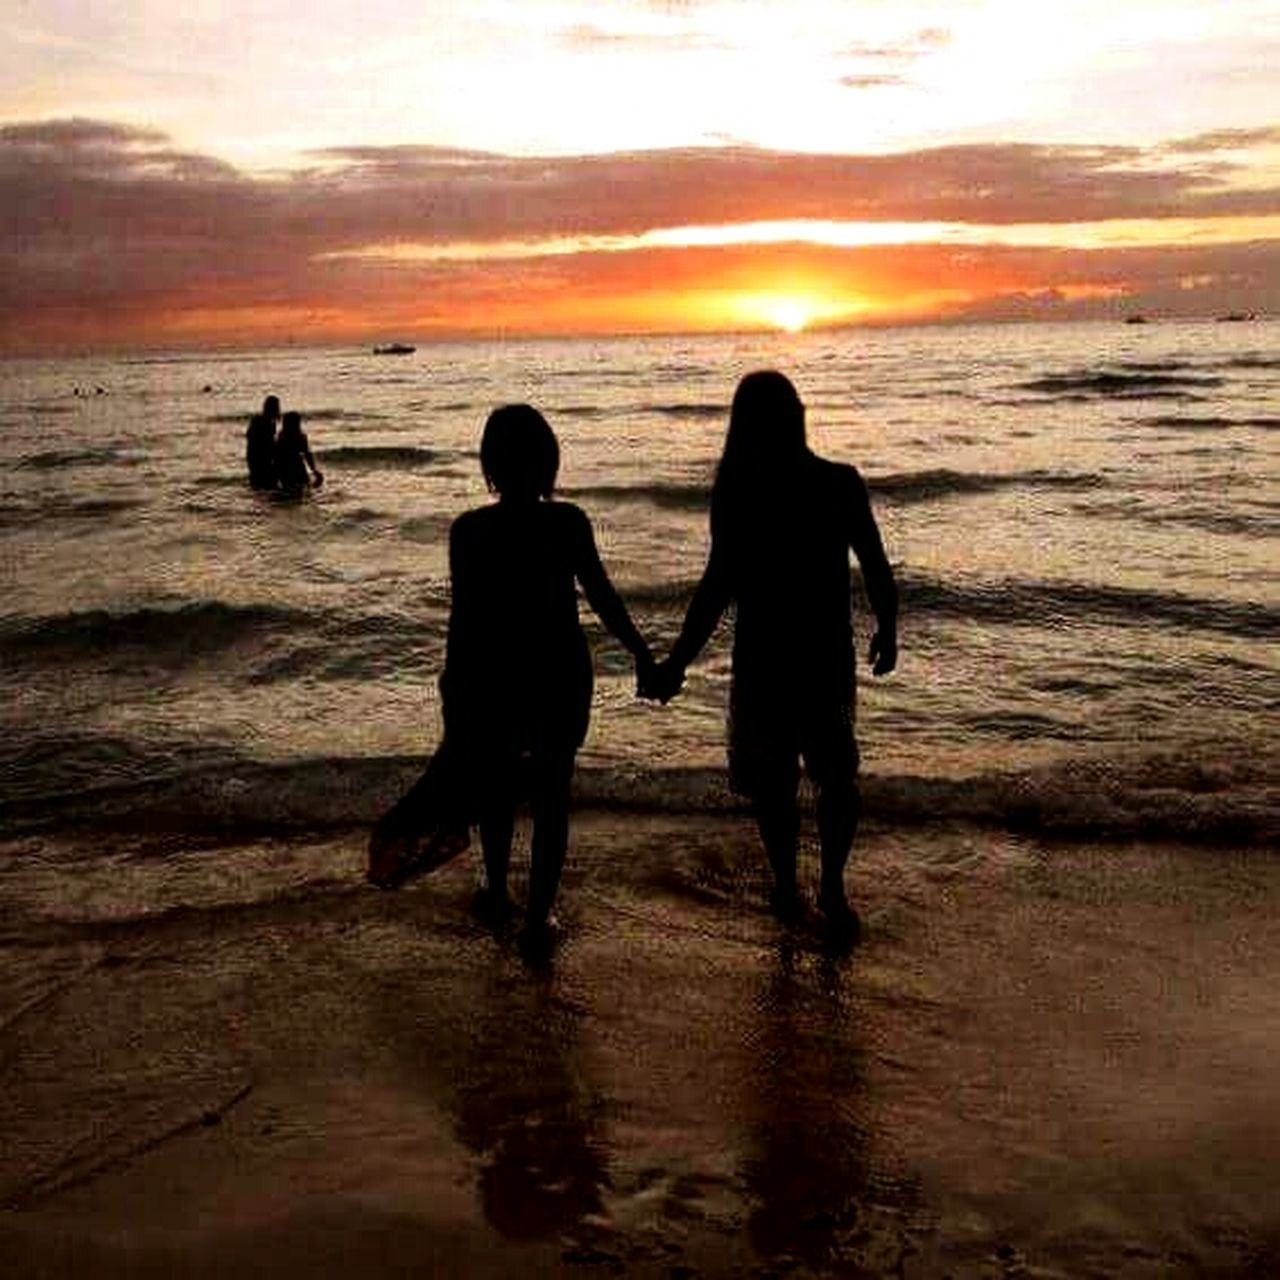 sea, sunset, beach, silhouette, two people, water, togetherness, leisure activity, real people, nature, lifestyles, love, vacations, sand, sky, full length, childhood, horizon over water, scenics, boys, beauty in nature, men, bonding, outdoors, day, adult, people